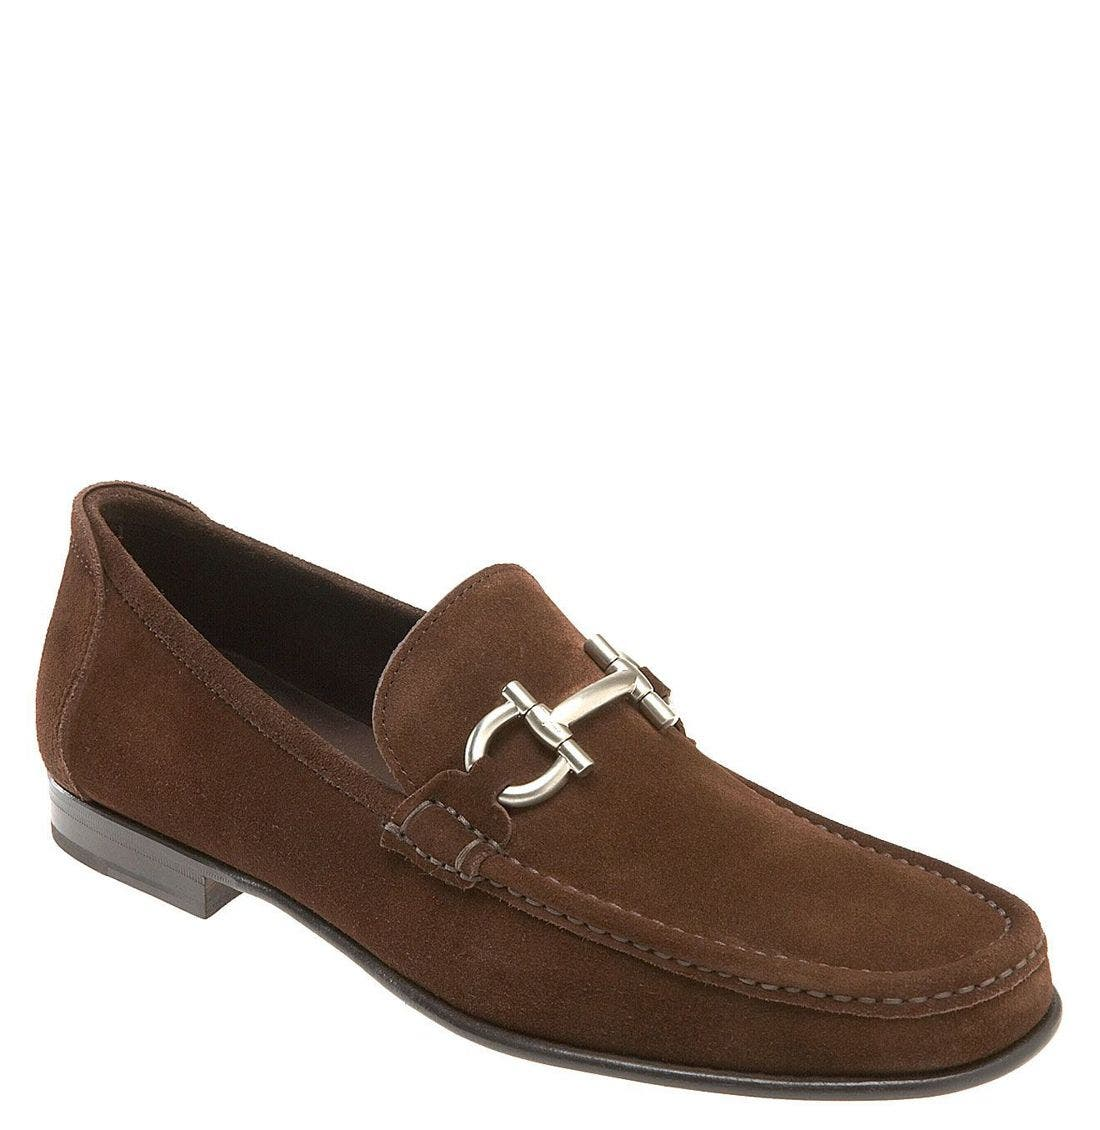 SALVATORE FERRAGAMO 'Cancun' Loafer, Main, color, HKS